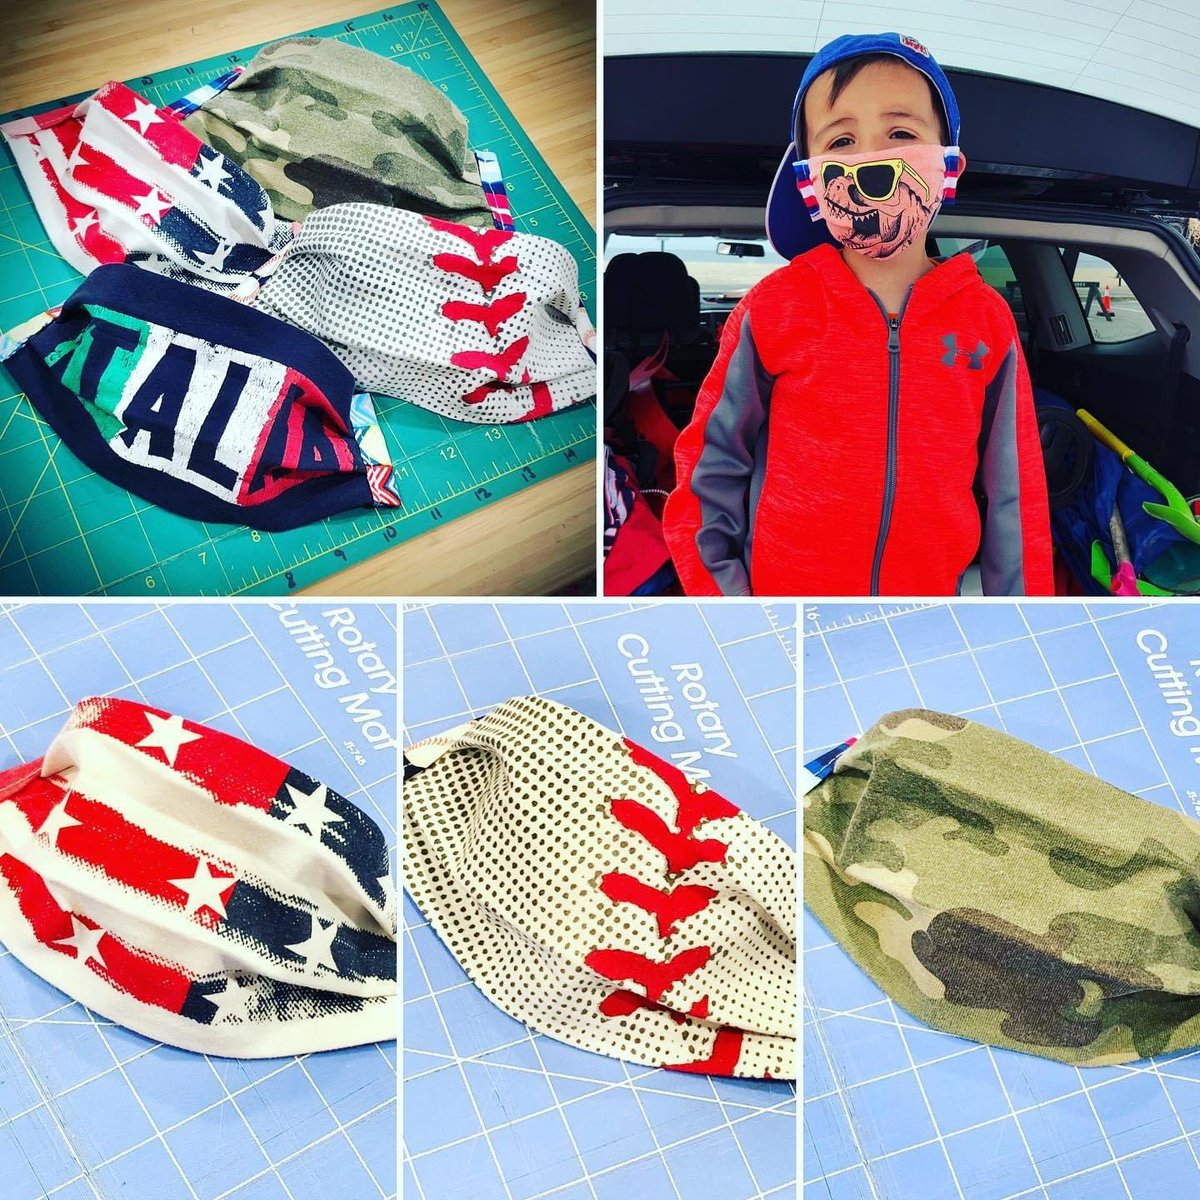 Vintage, one-of-a-kind #tshirt masks for the kiddos! 100% cotton, jersey knit, super soft and fitted to their tiny faces ☺️ and adjustable ear loops to boot, which means they'll fit big kids too!   Shop: https://t.co/mPj6FWeaT4…  #livevaccarously #etsy #wearamask 😷 https://t.co/D9A6stVvMu